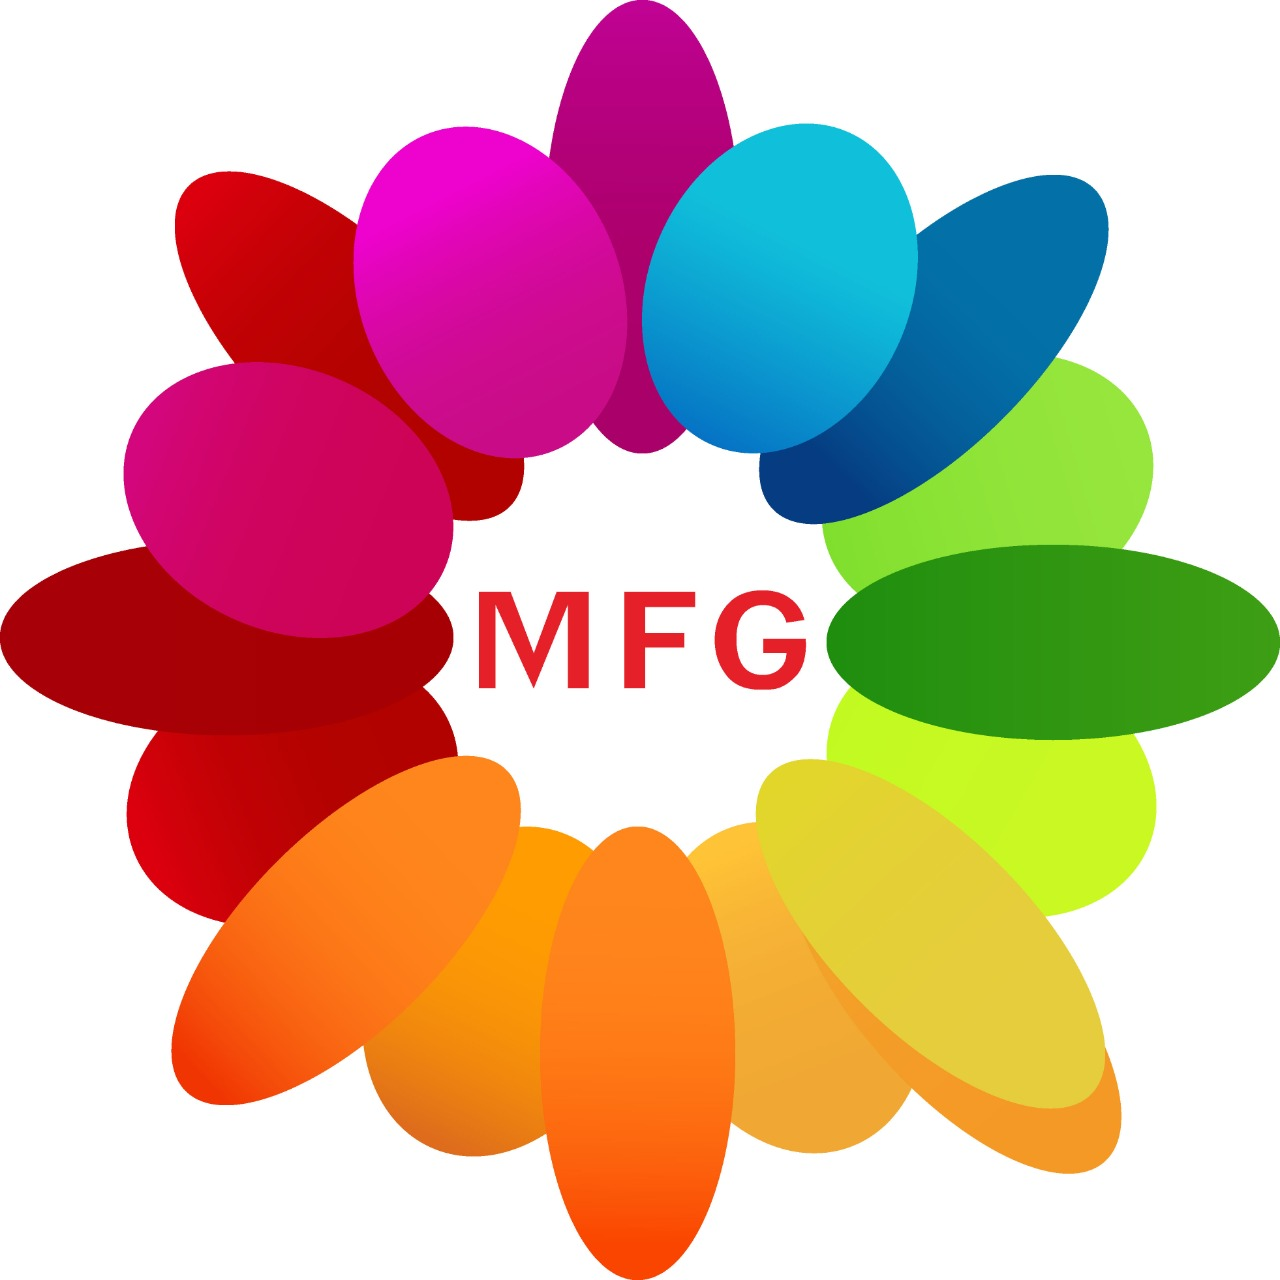 1 kg butterscotch cake with bottle of red wine